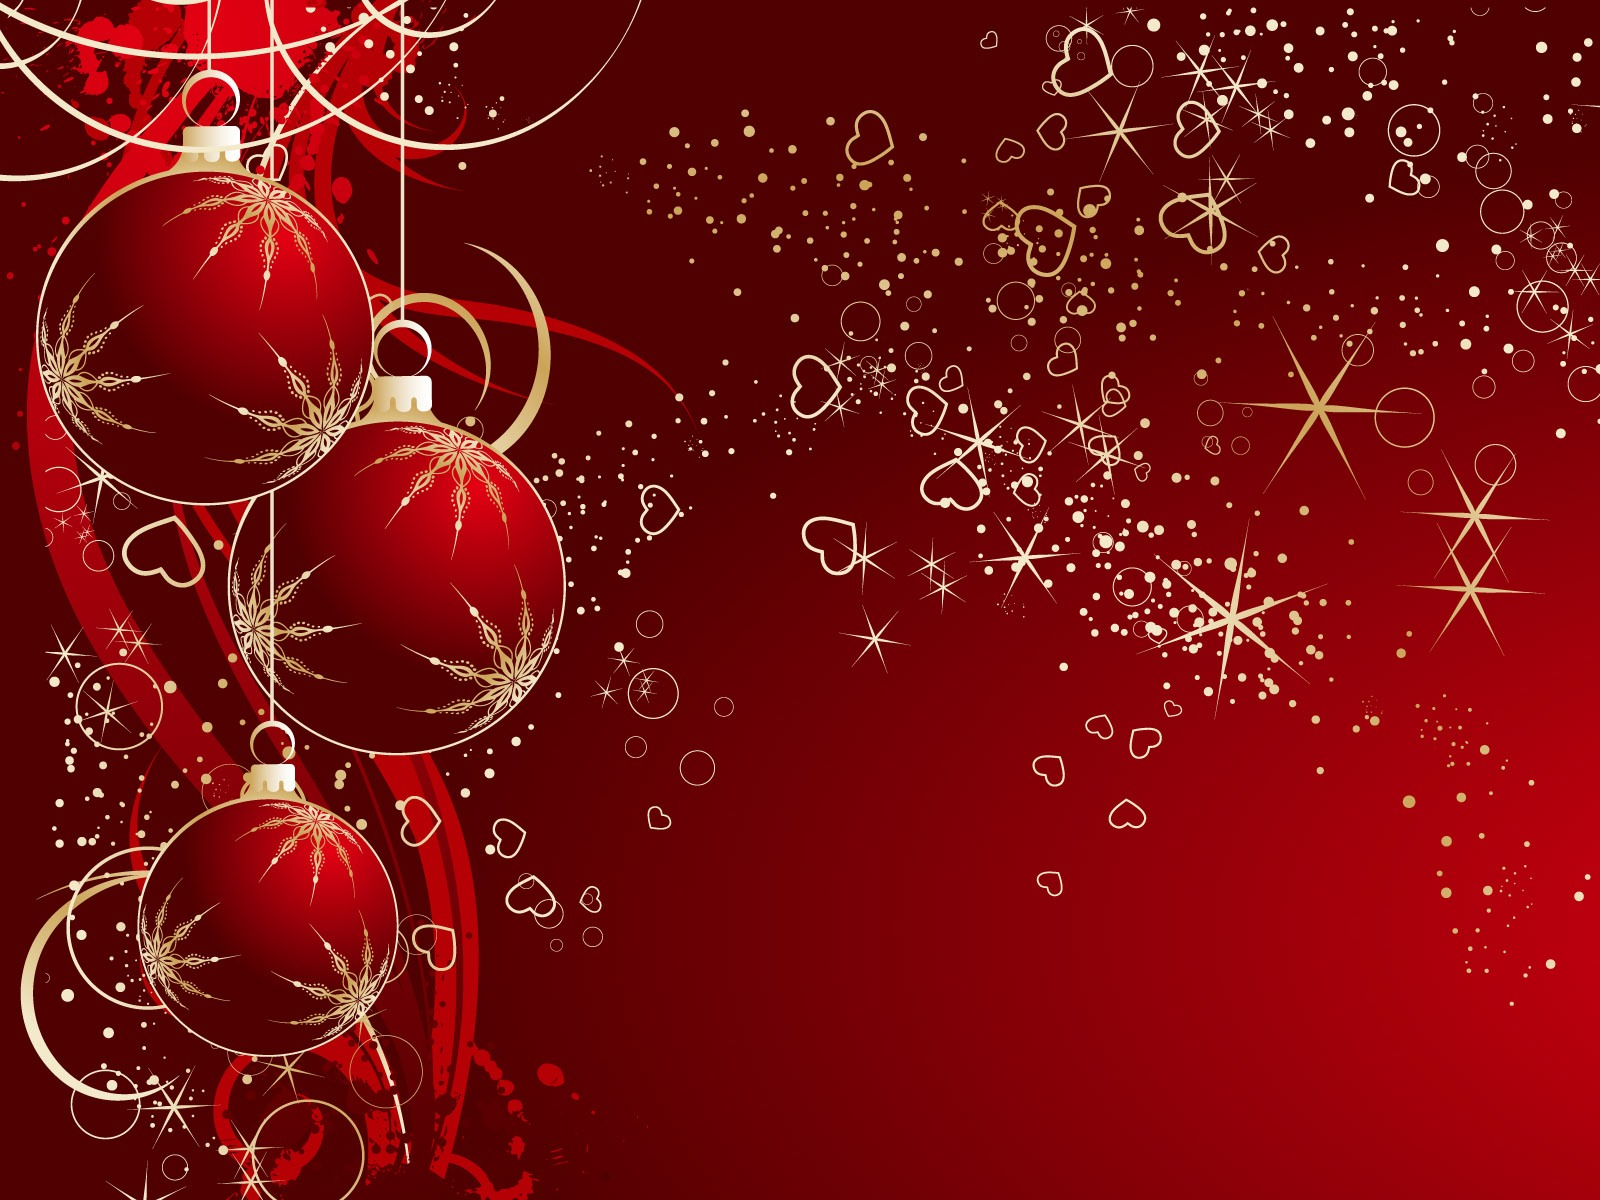 Christmas Wallpaper For Twitter 1600x1200